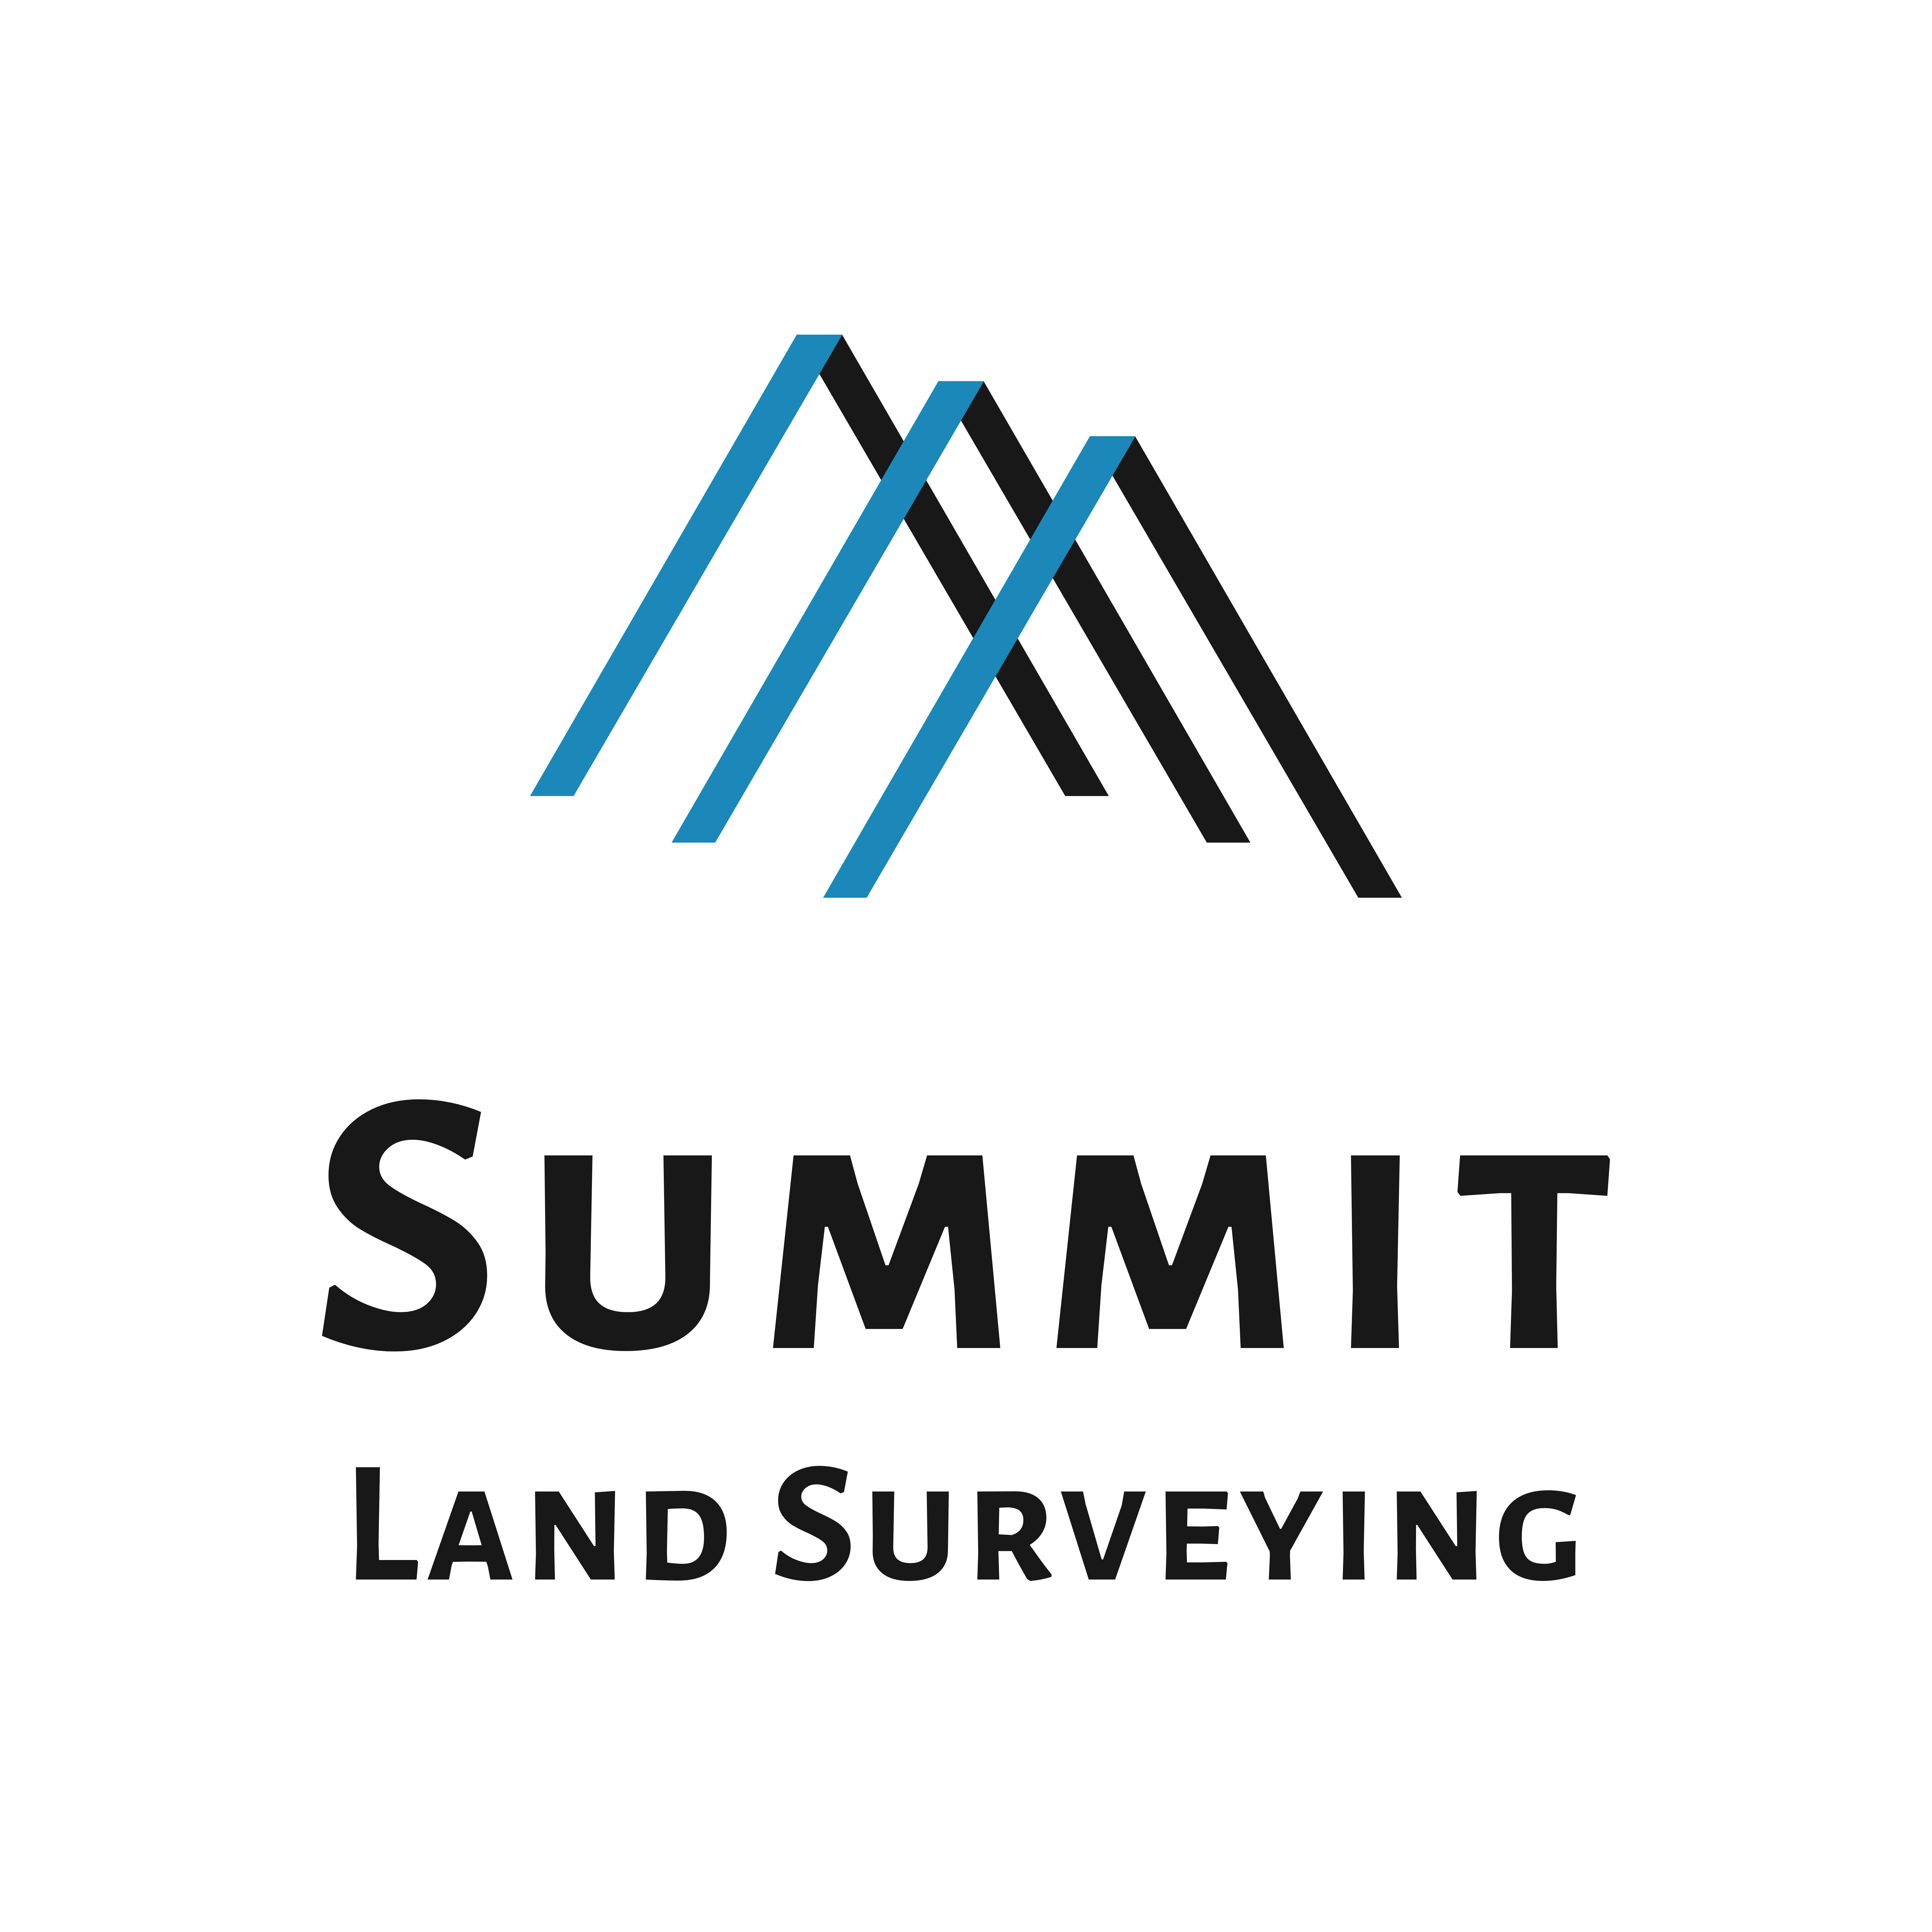 Summit Land Surveying logo